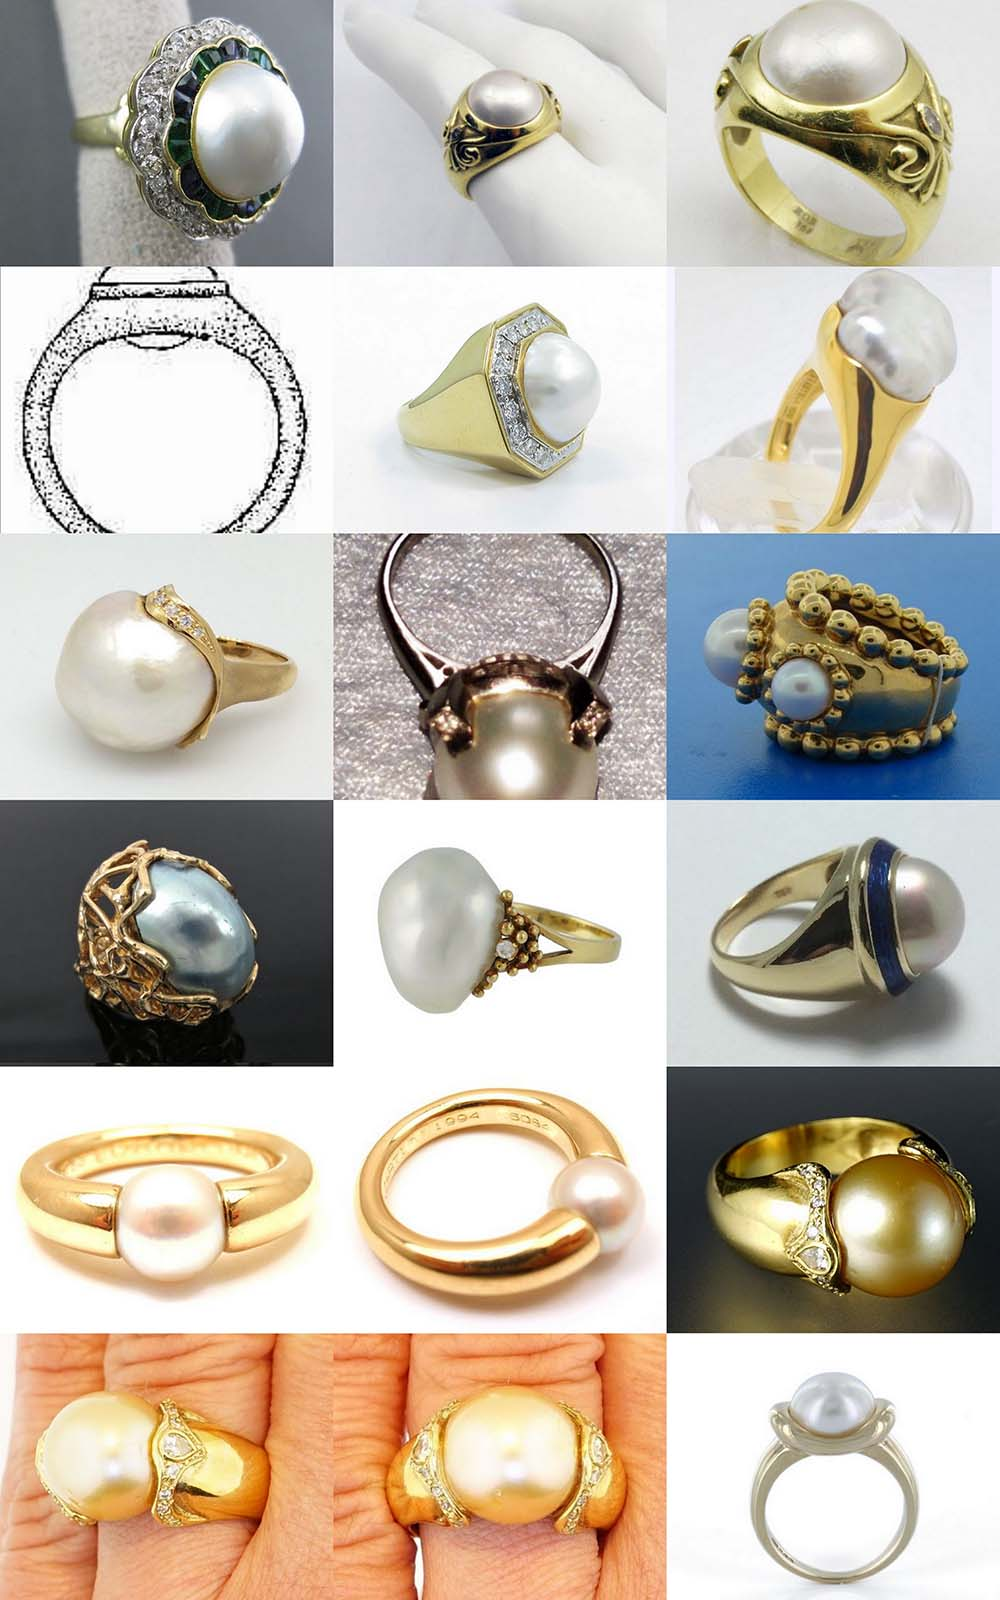 Astrogems can make jyotish pearl rings in any style.